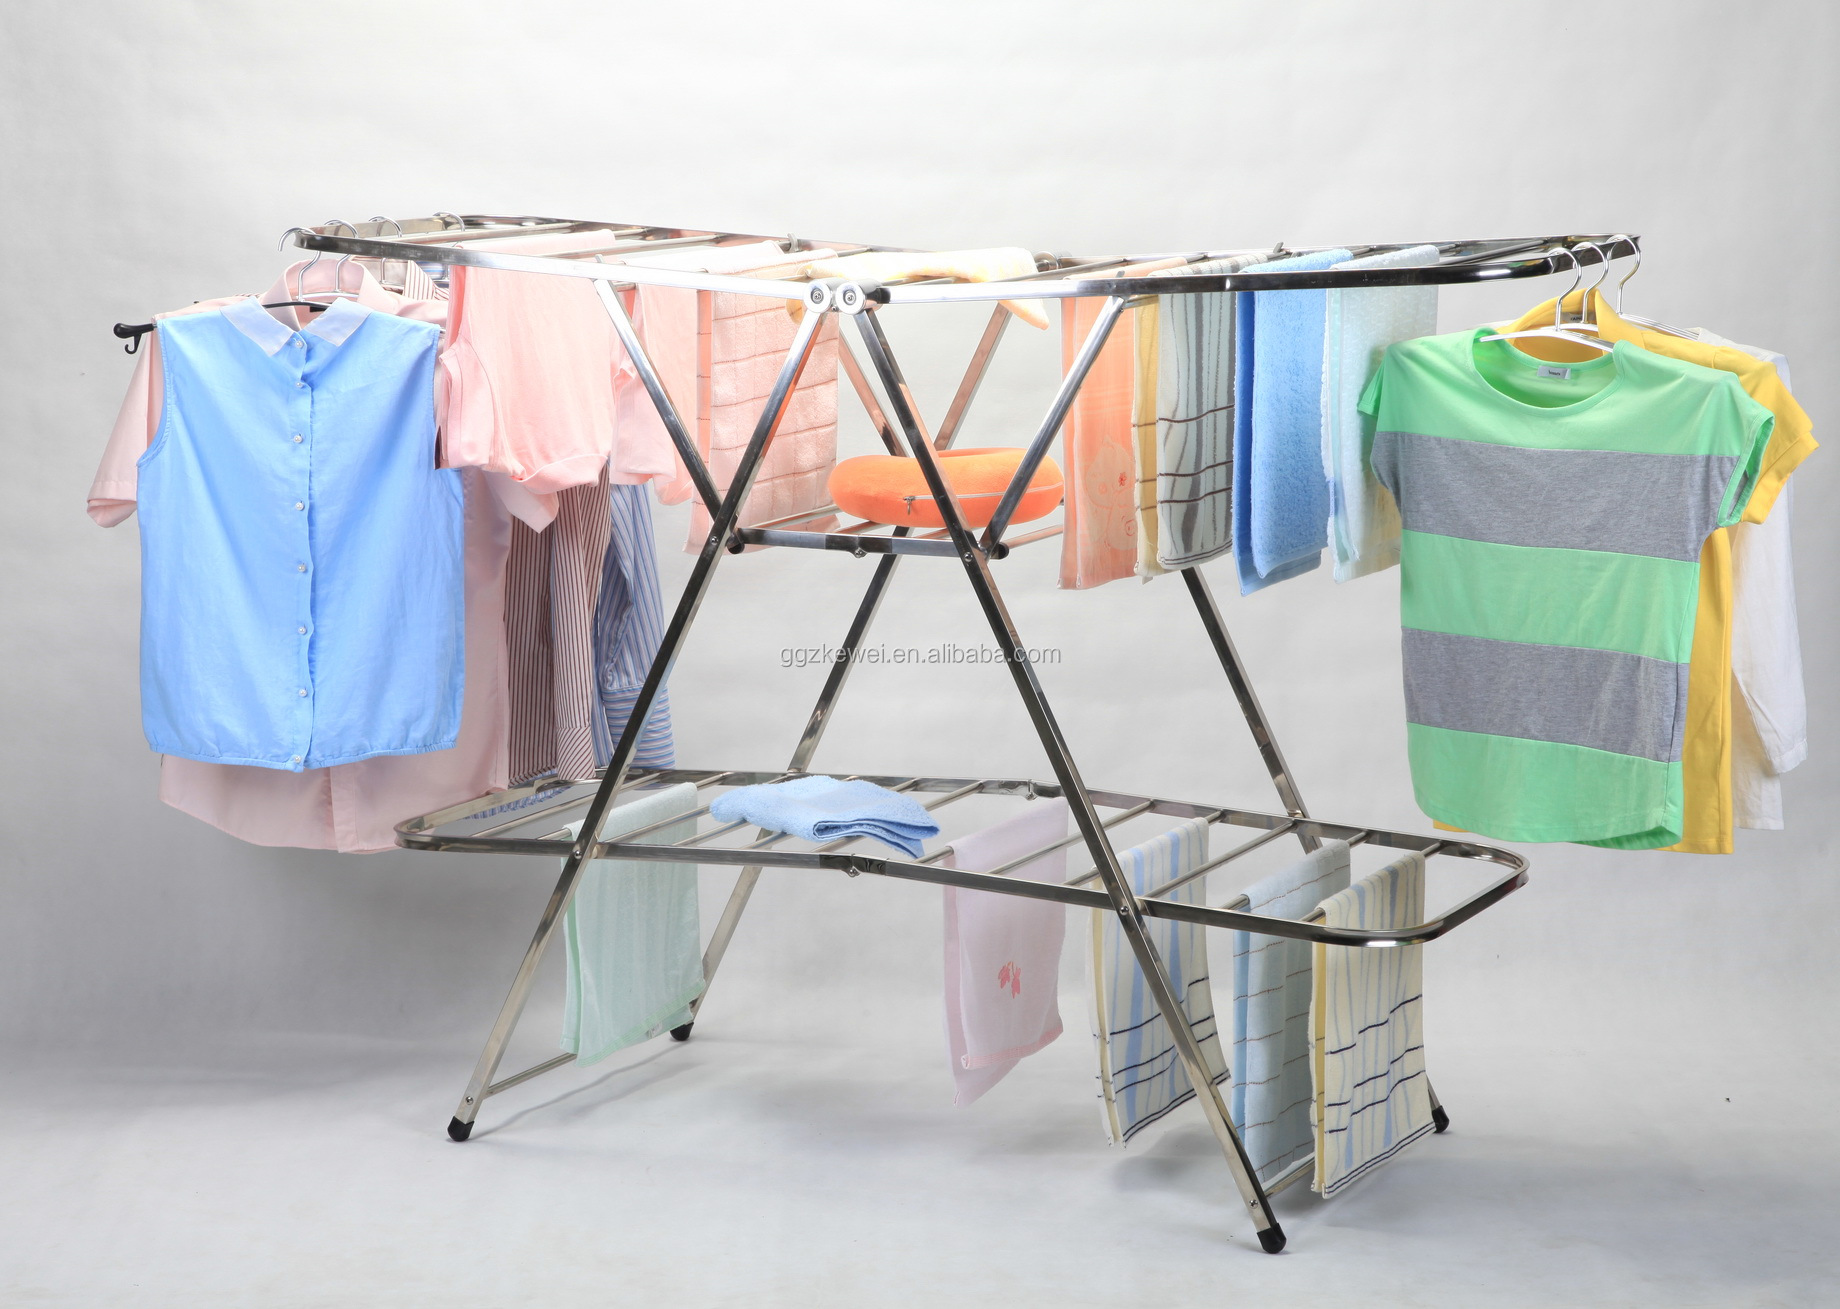 3 Layers Stainless Steel  Folding Clothes Drying Racks, Multifuctional Clothes  Rack HL-7019C